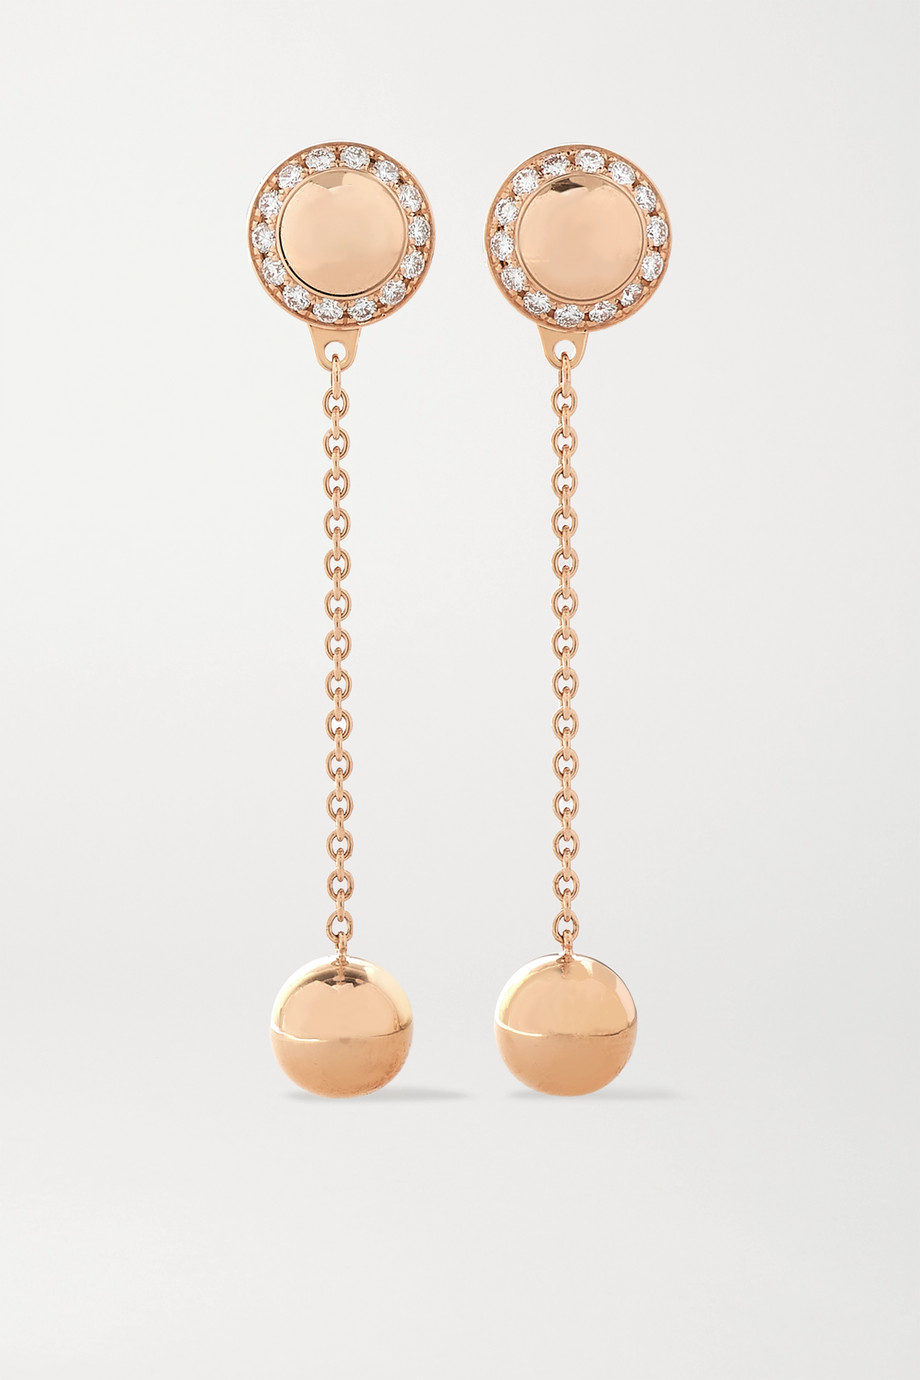 Piaget Possession 18-karat rose gold diamond earrings